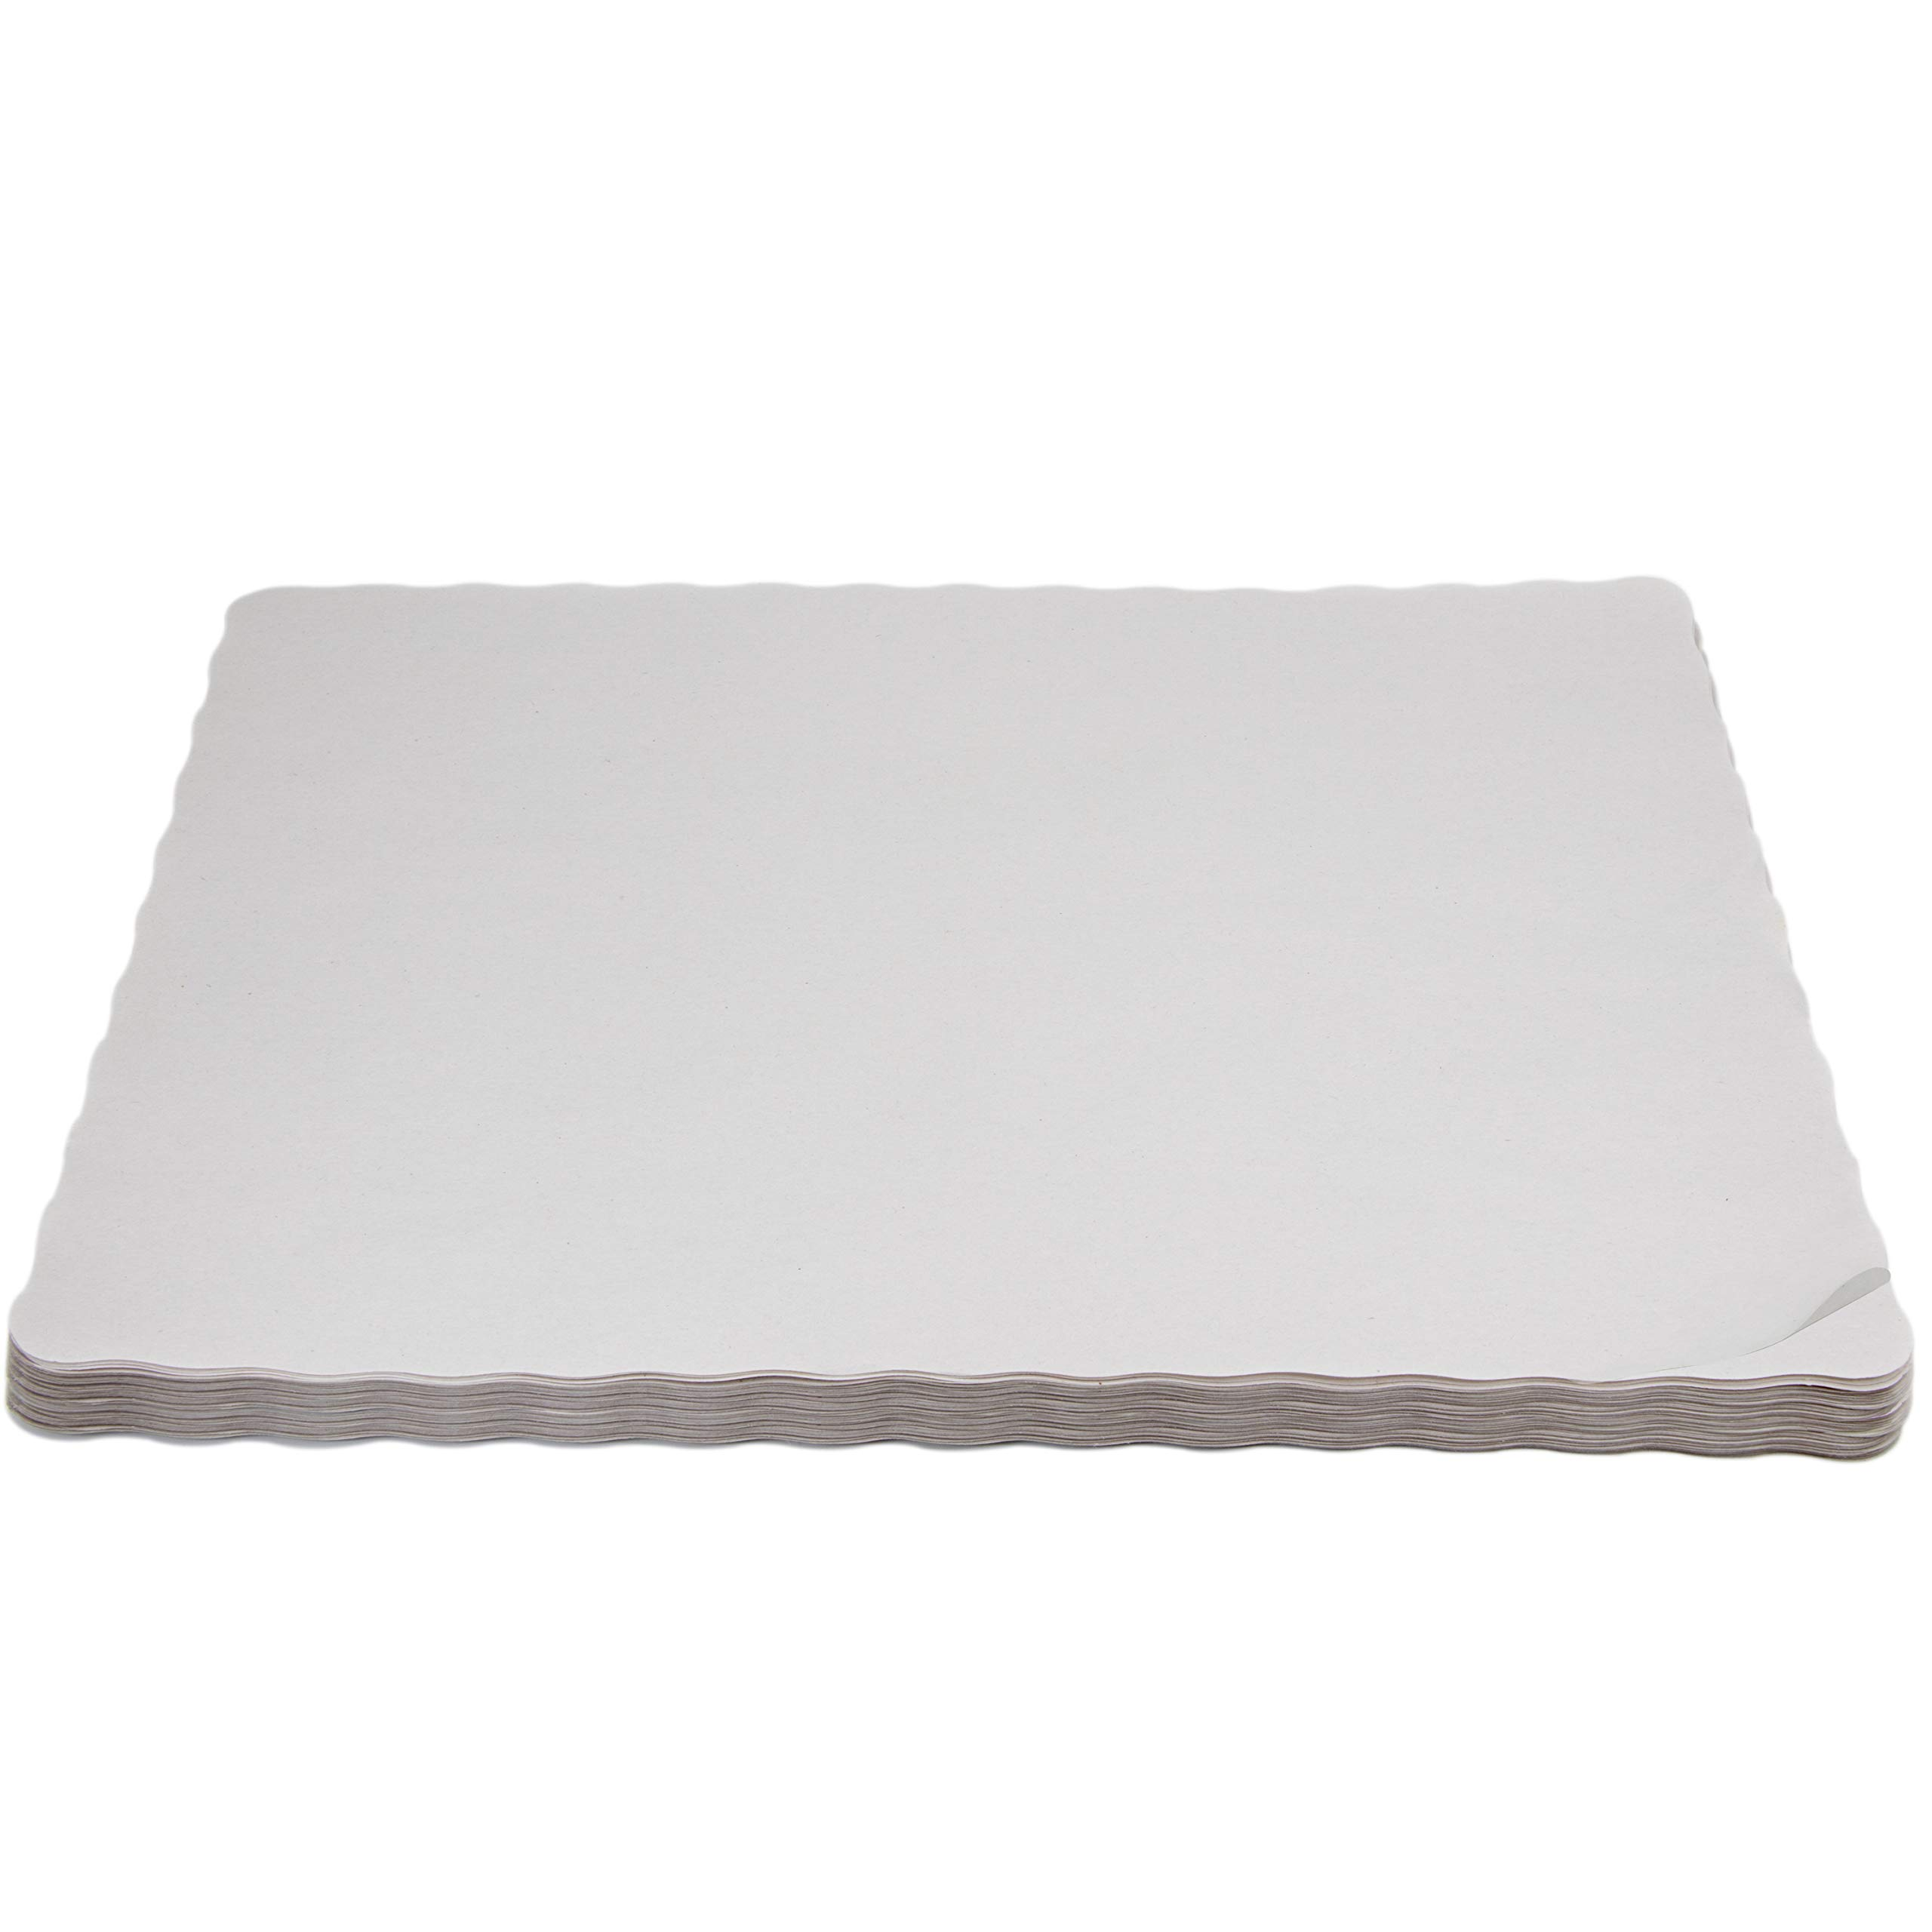 Upper Midland Products Disposable Paper Placemats -Blank White Rectangle 14 X 10 Inches with Wavy Edge